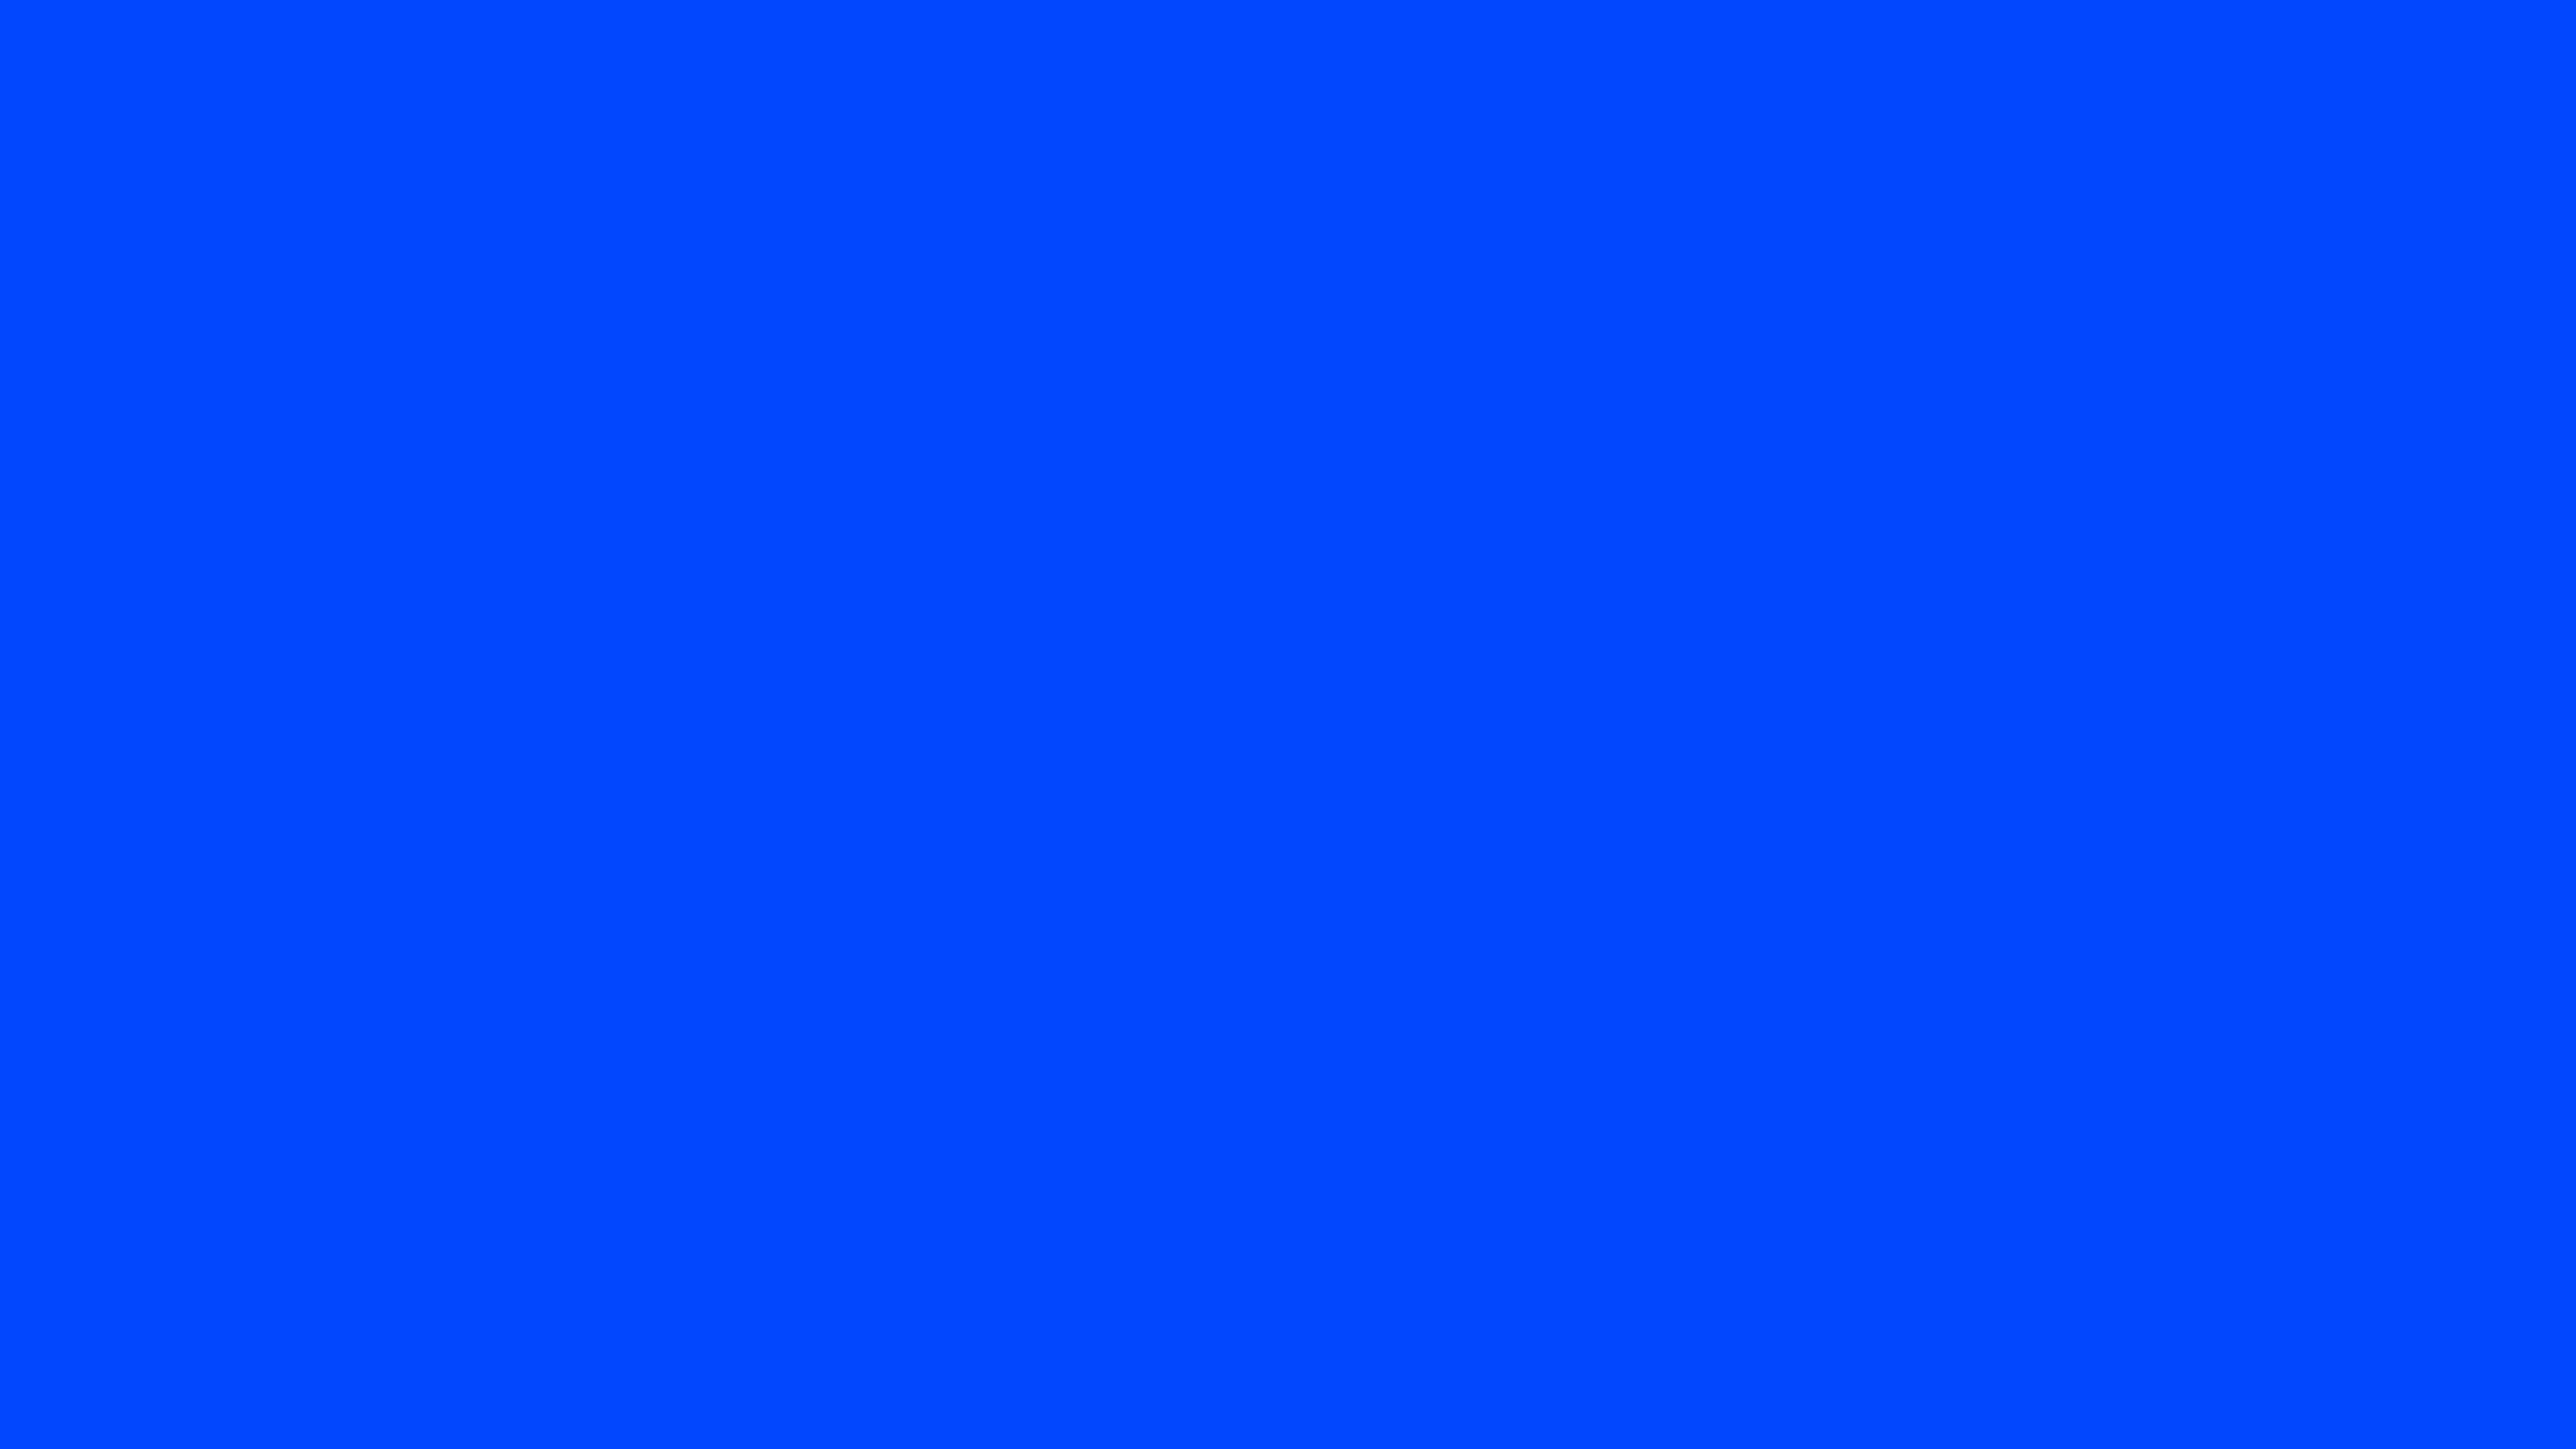 7680x4320 Blue RYB Solid Color Background